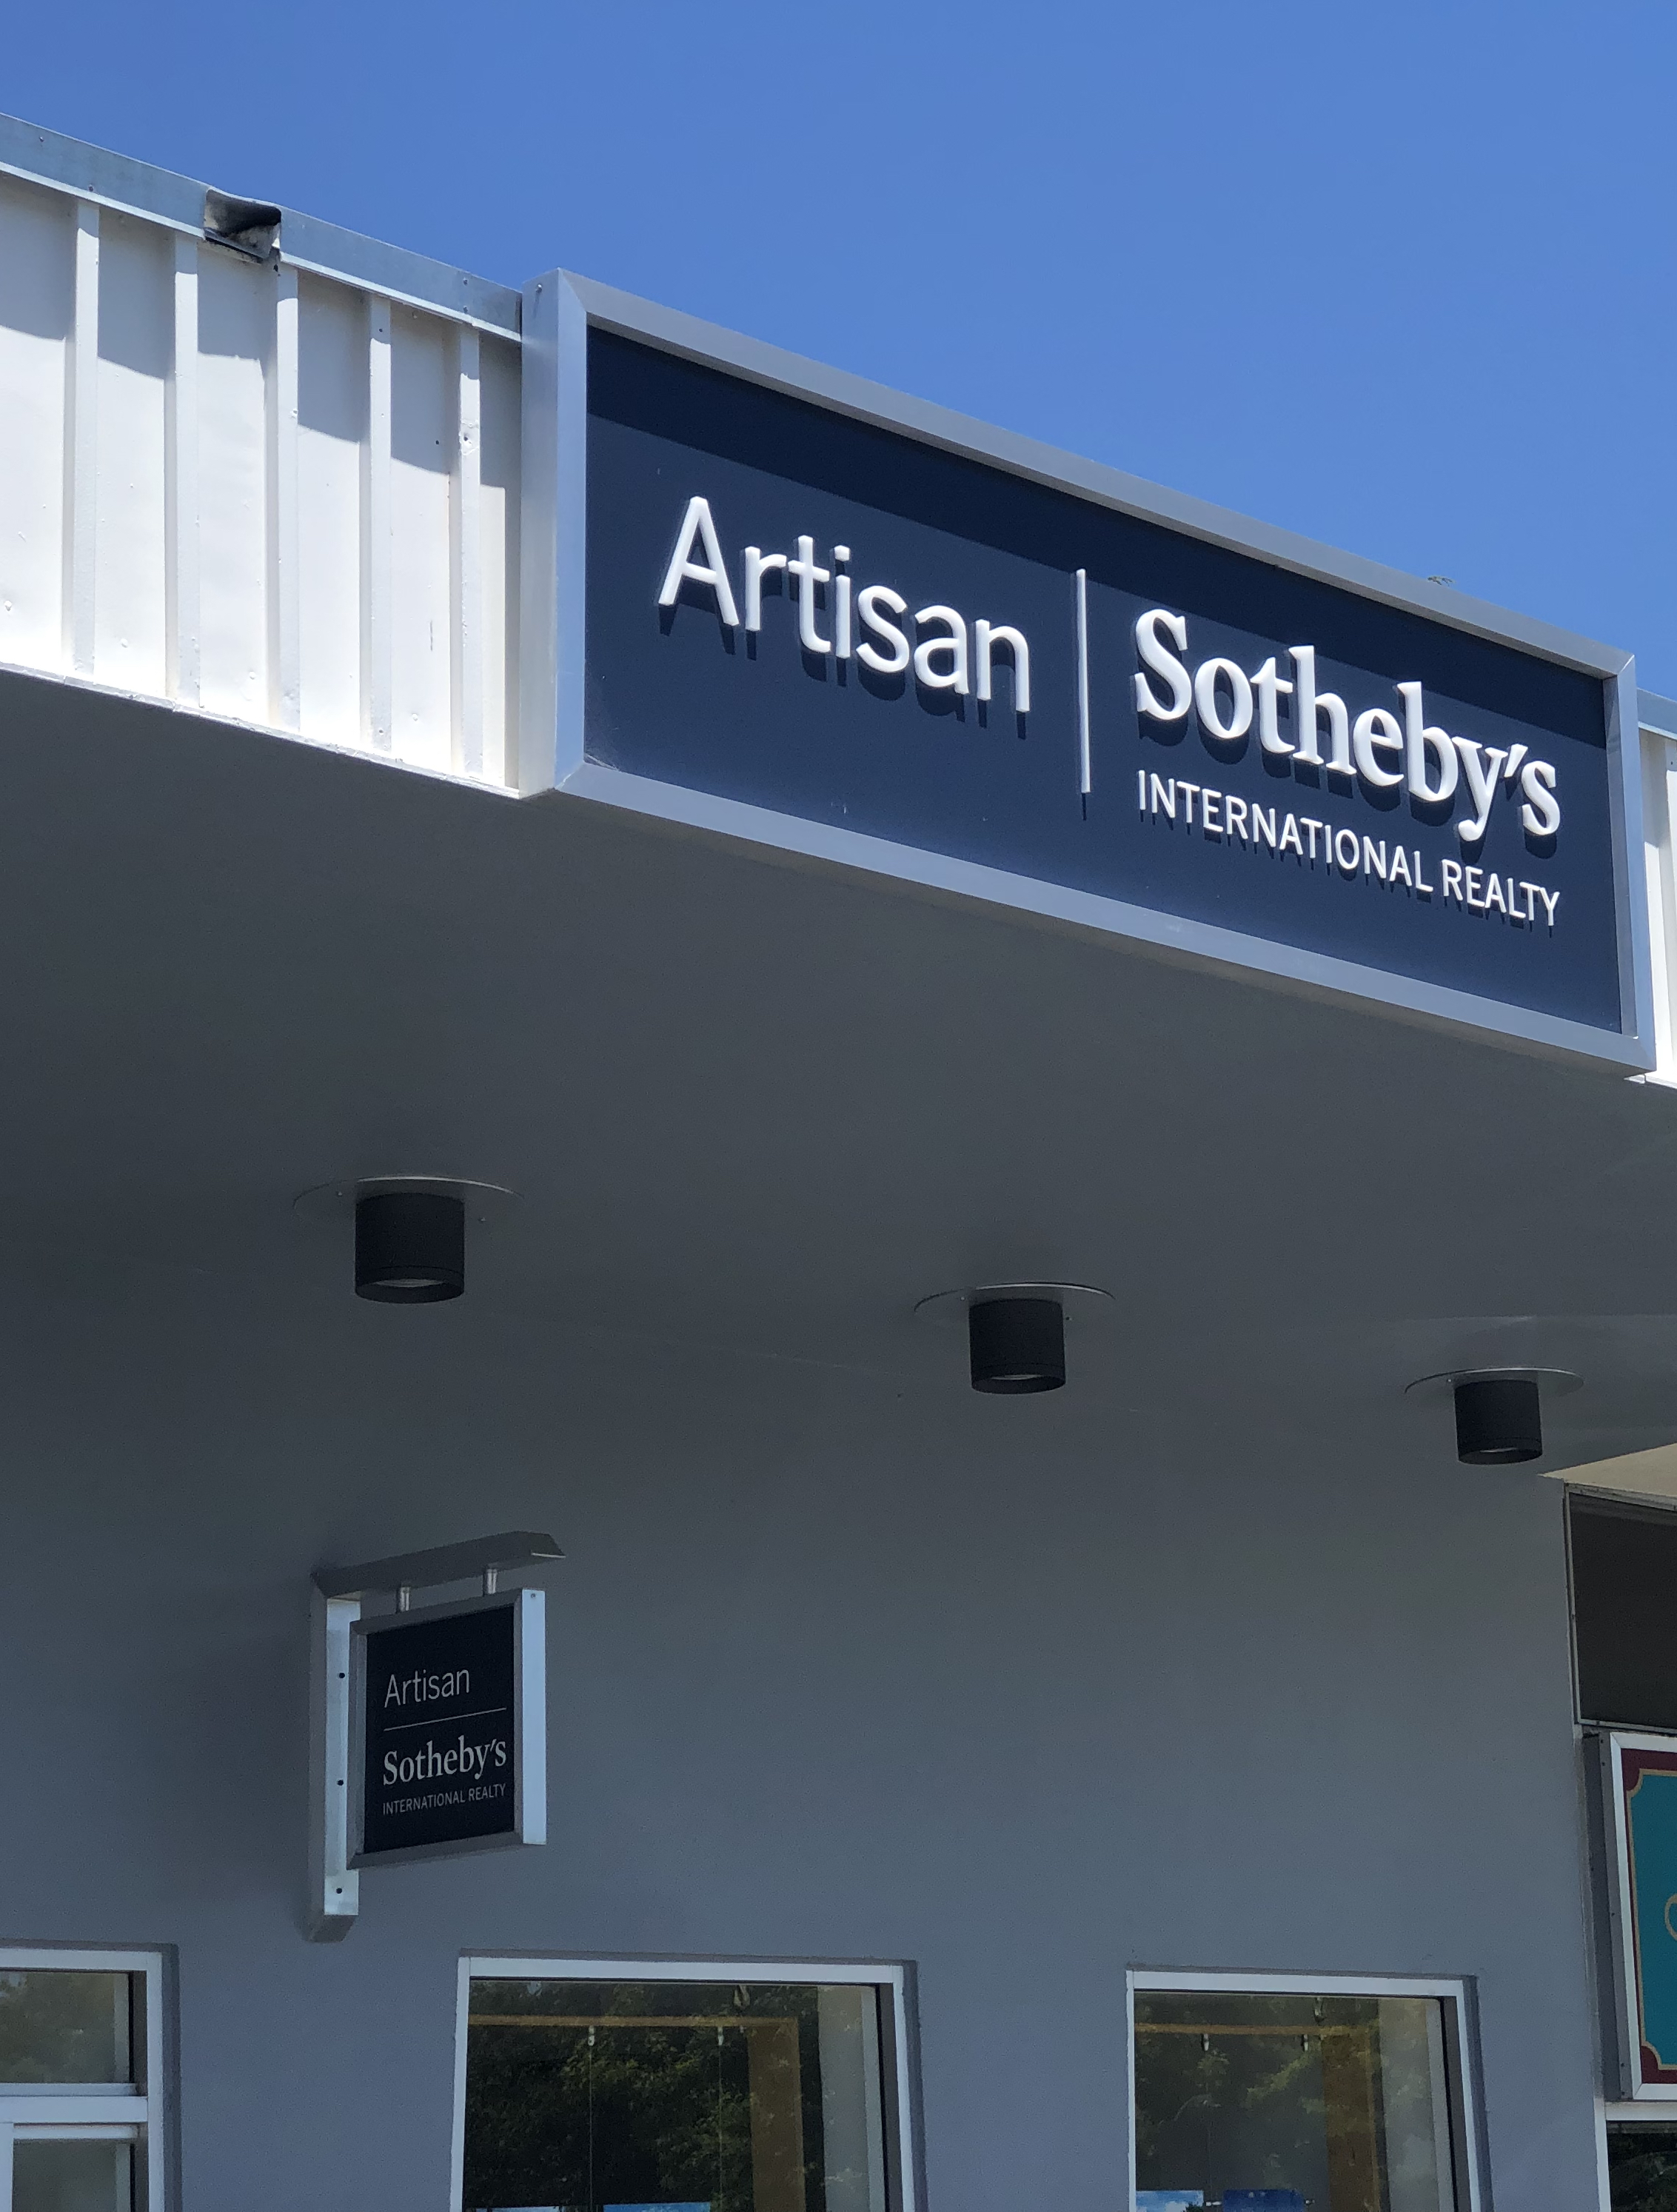 Artisan Sotheby's Real Estate Office